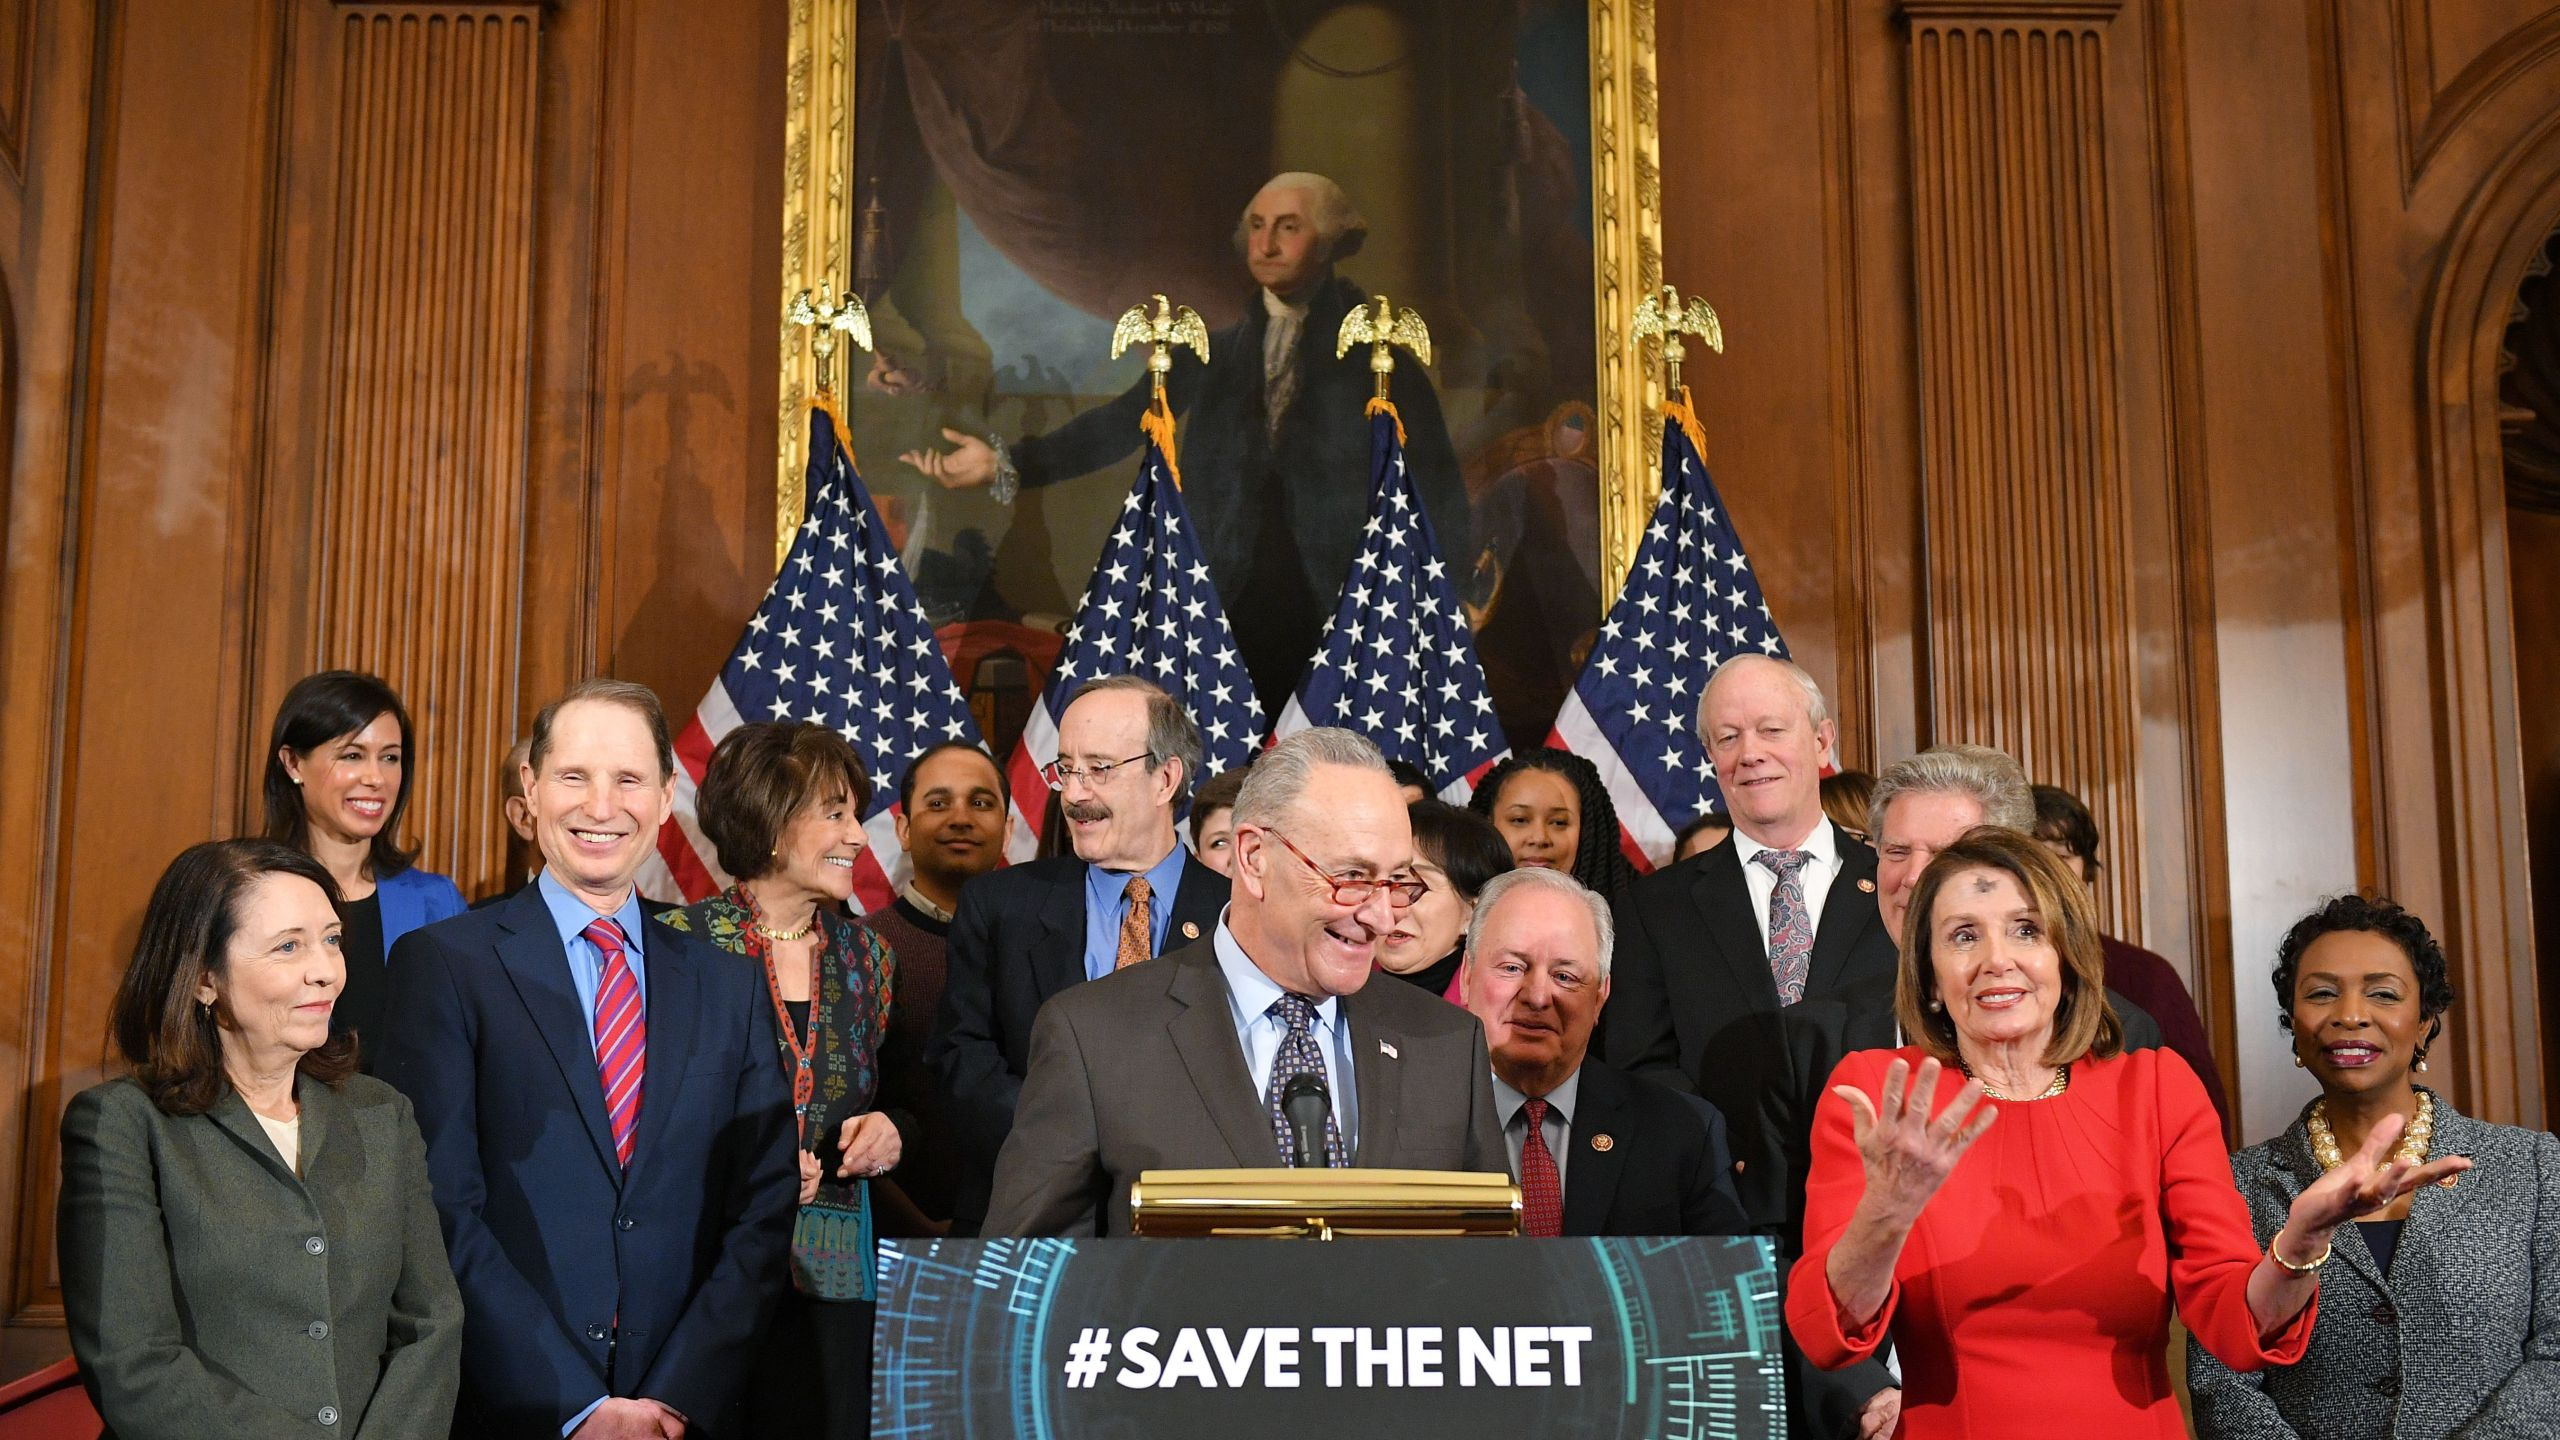 House Majority Leader Chuck Schumer, at podium, speaks with House Speaker Nancy Pelosi to his left during an event to announce net neutrality legislation in the Rayburn Room of the U.S. Capitol on March 6, 2019. (Credit: Mandel Ngan / AFP / Getty Images)